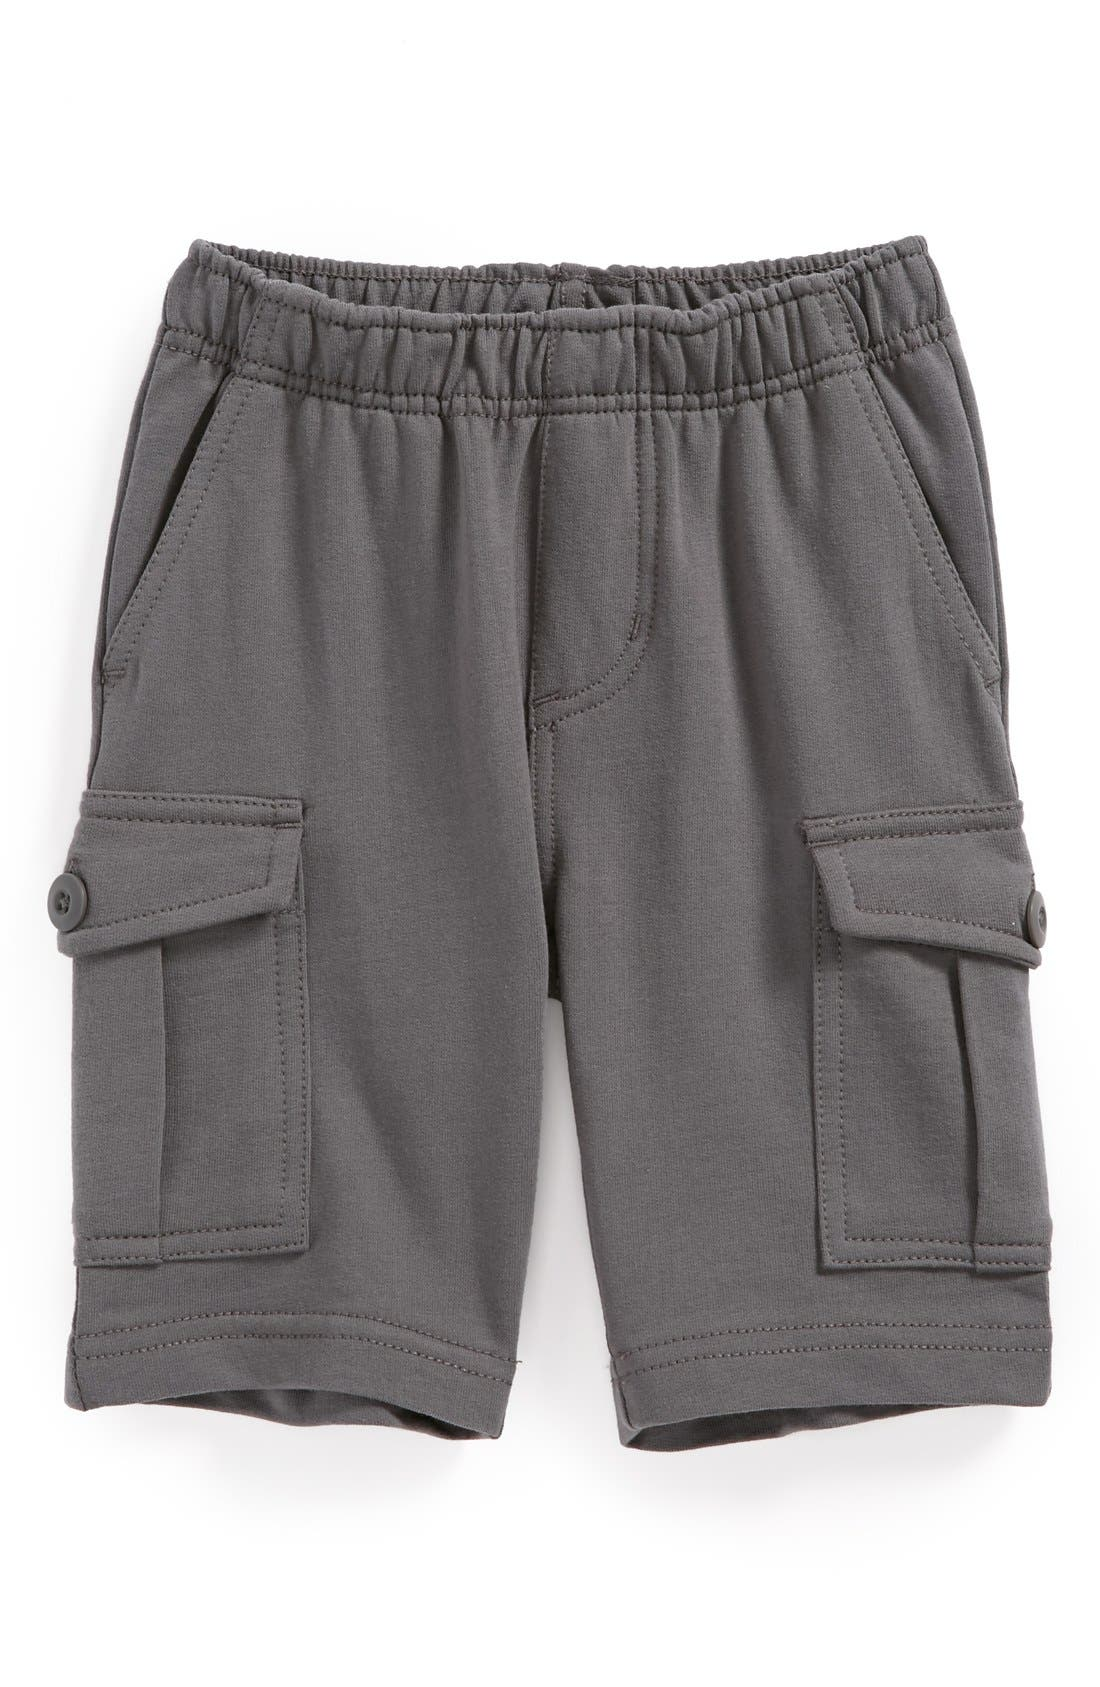 Alternate Image 1 Selected - Tea Collection French Terry Cargo Shorts (Toddler Boys)